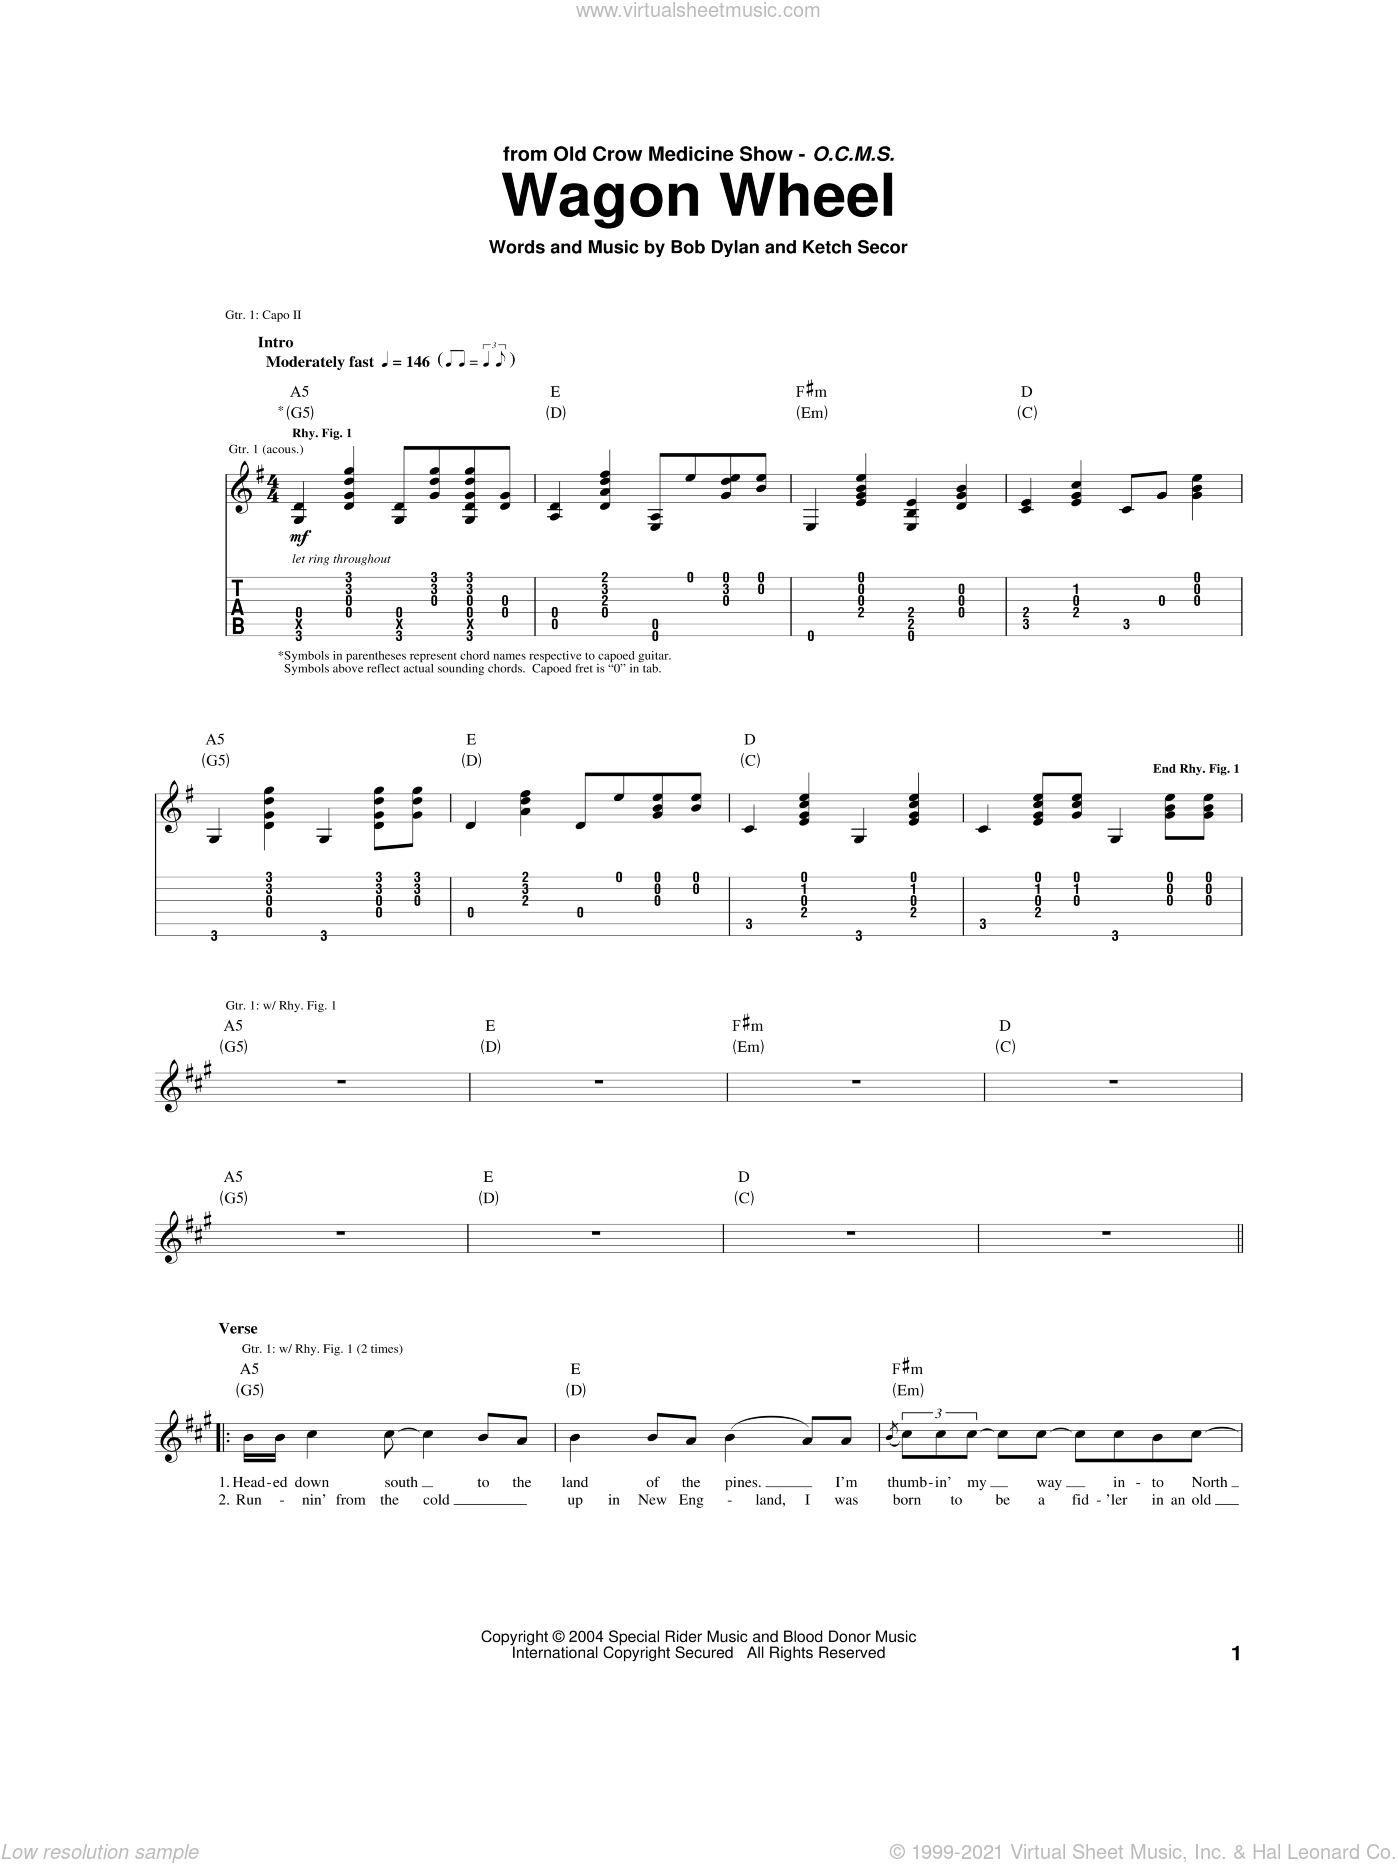 Wagon Wheel sheet music for guitar (tablature) by Ketch Secor